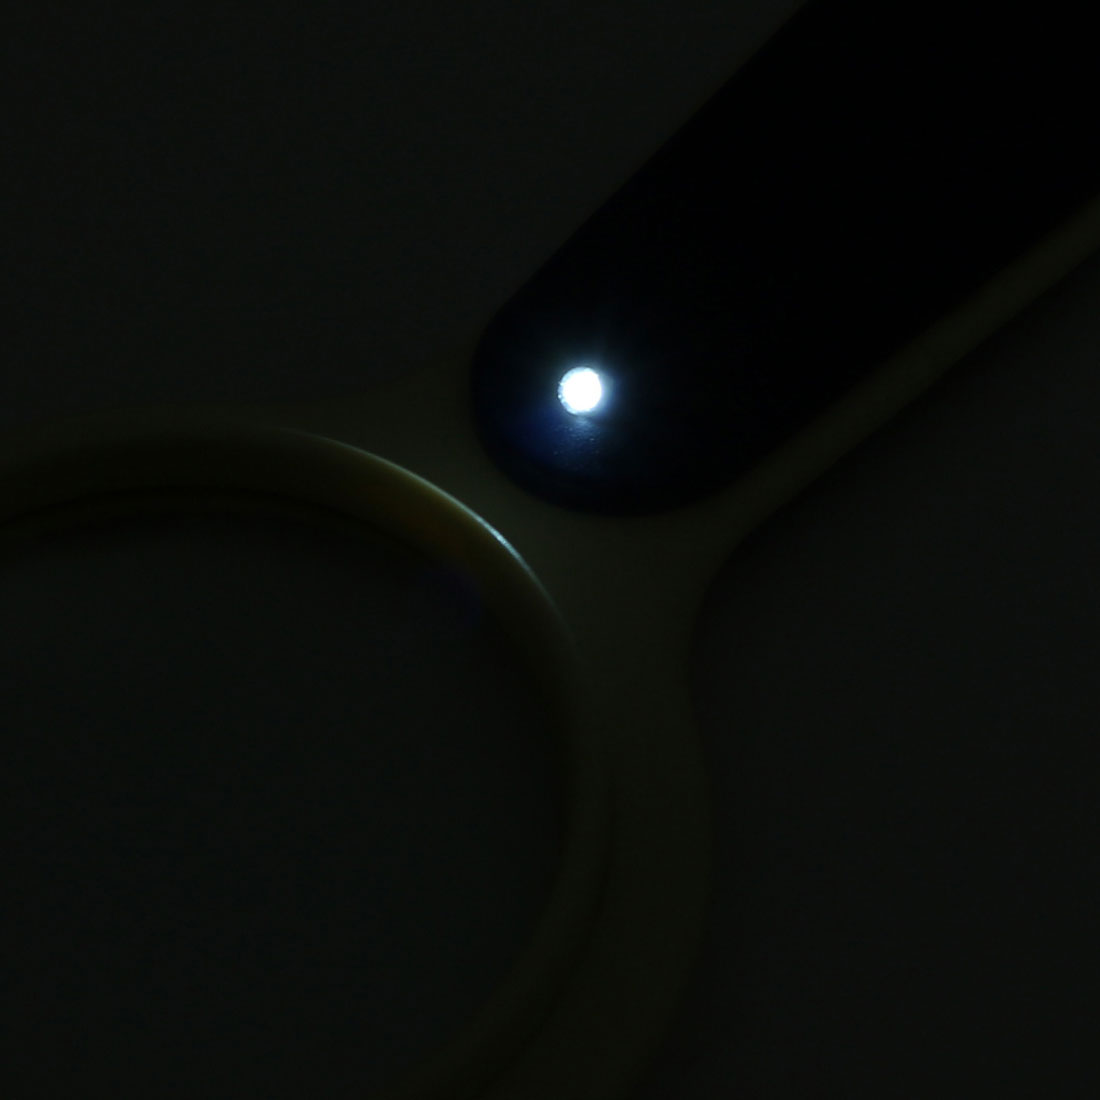 LED Light 5X 10X Illuminated Magnifier Handheld Magnifying Glass w Compass - image 2 of 4